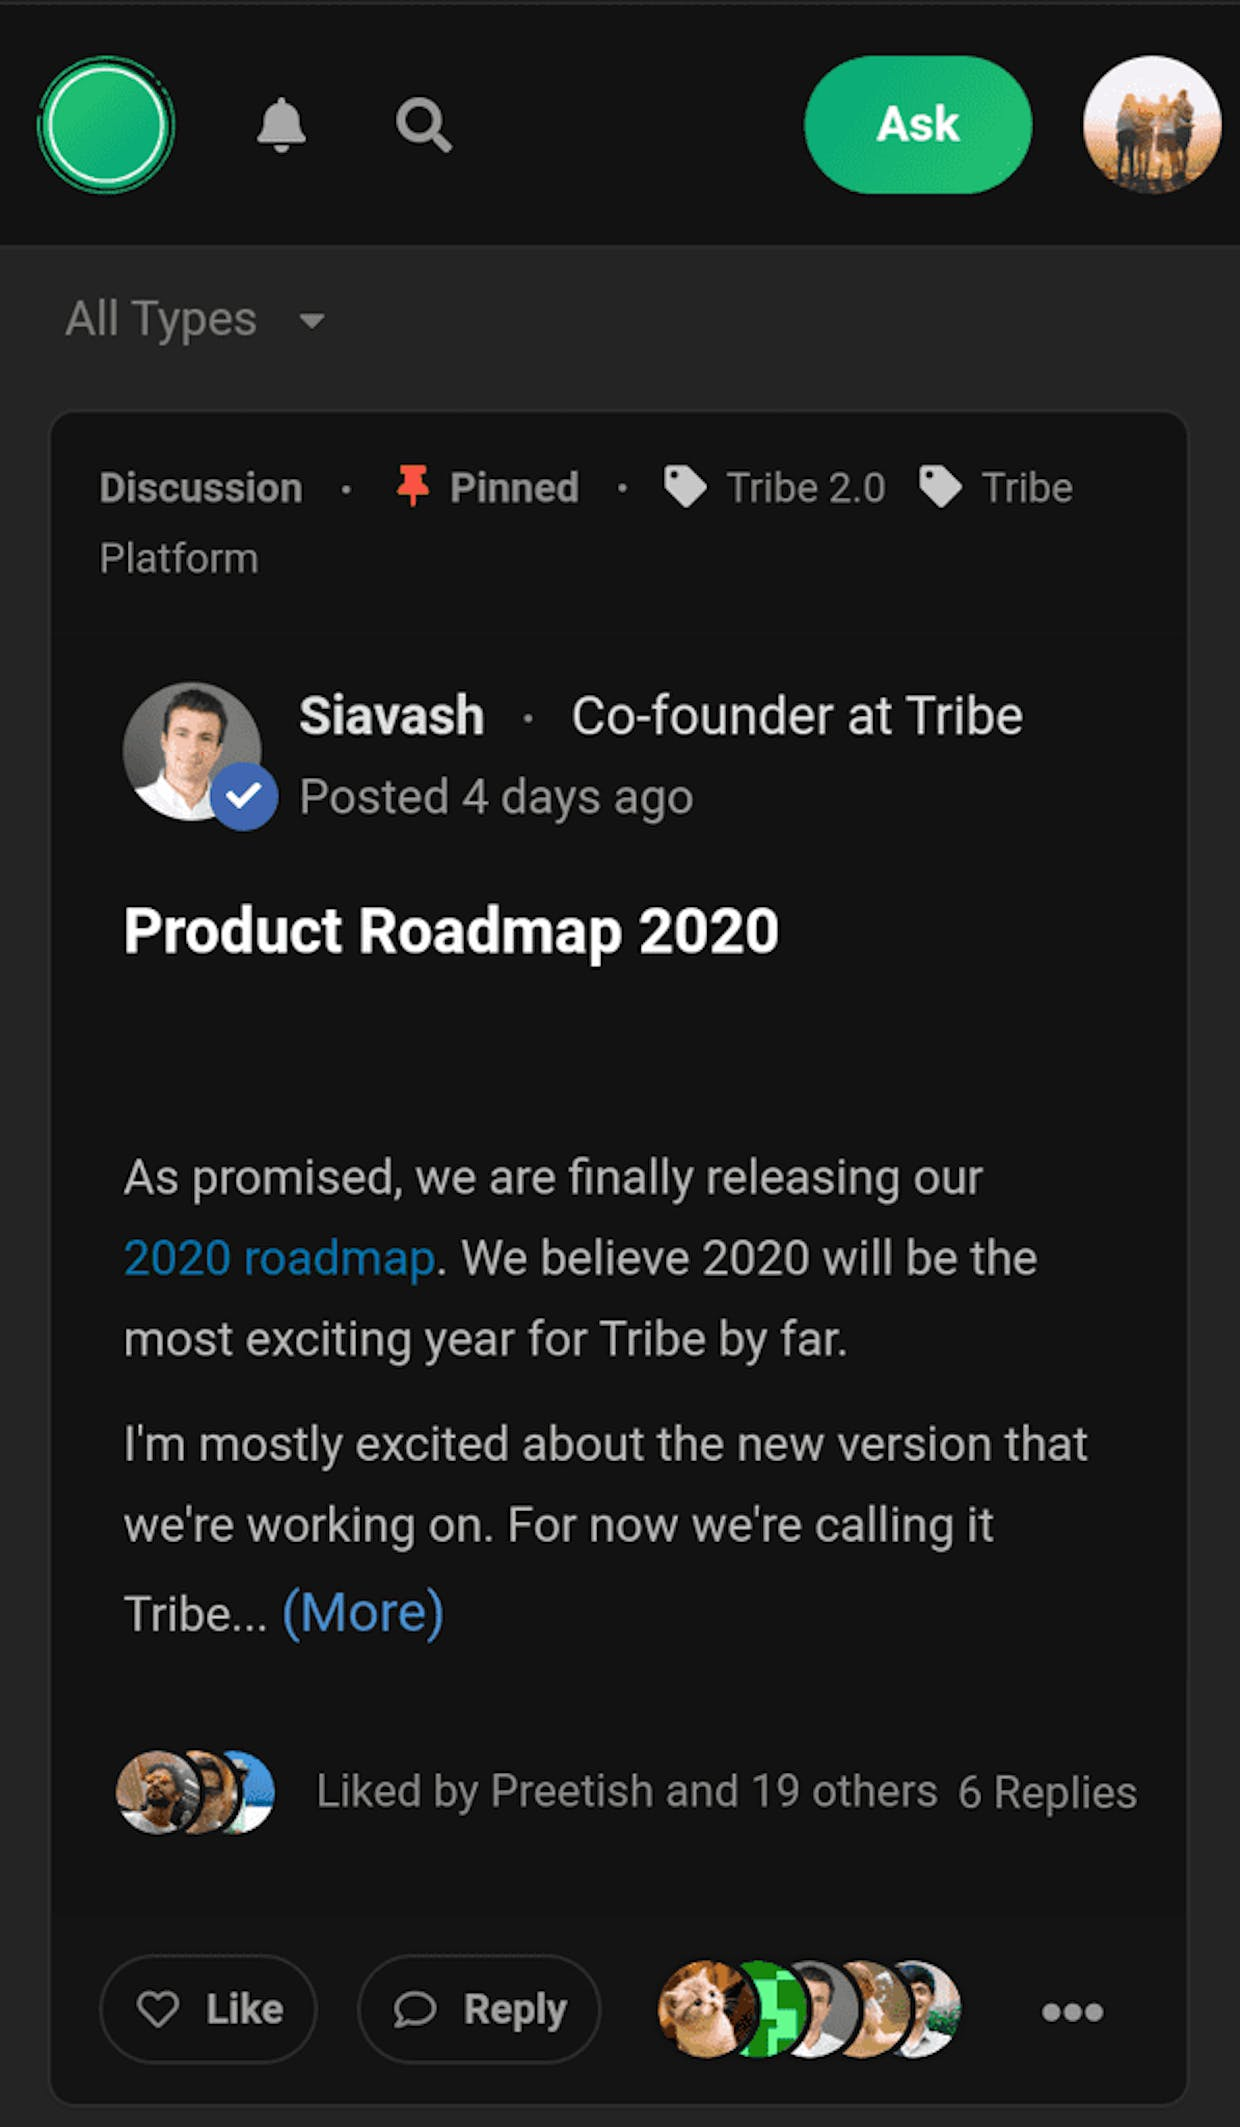 Dark mode is coming ... can't wait for it 😊😊